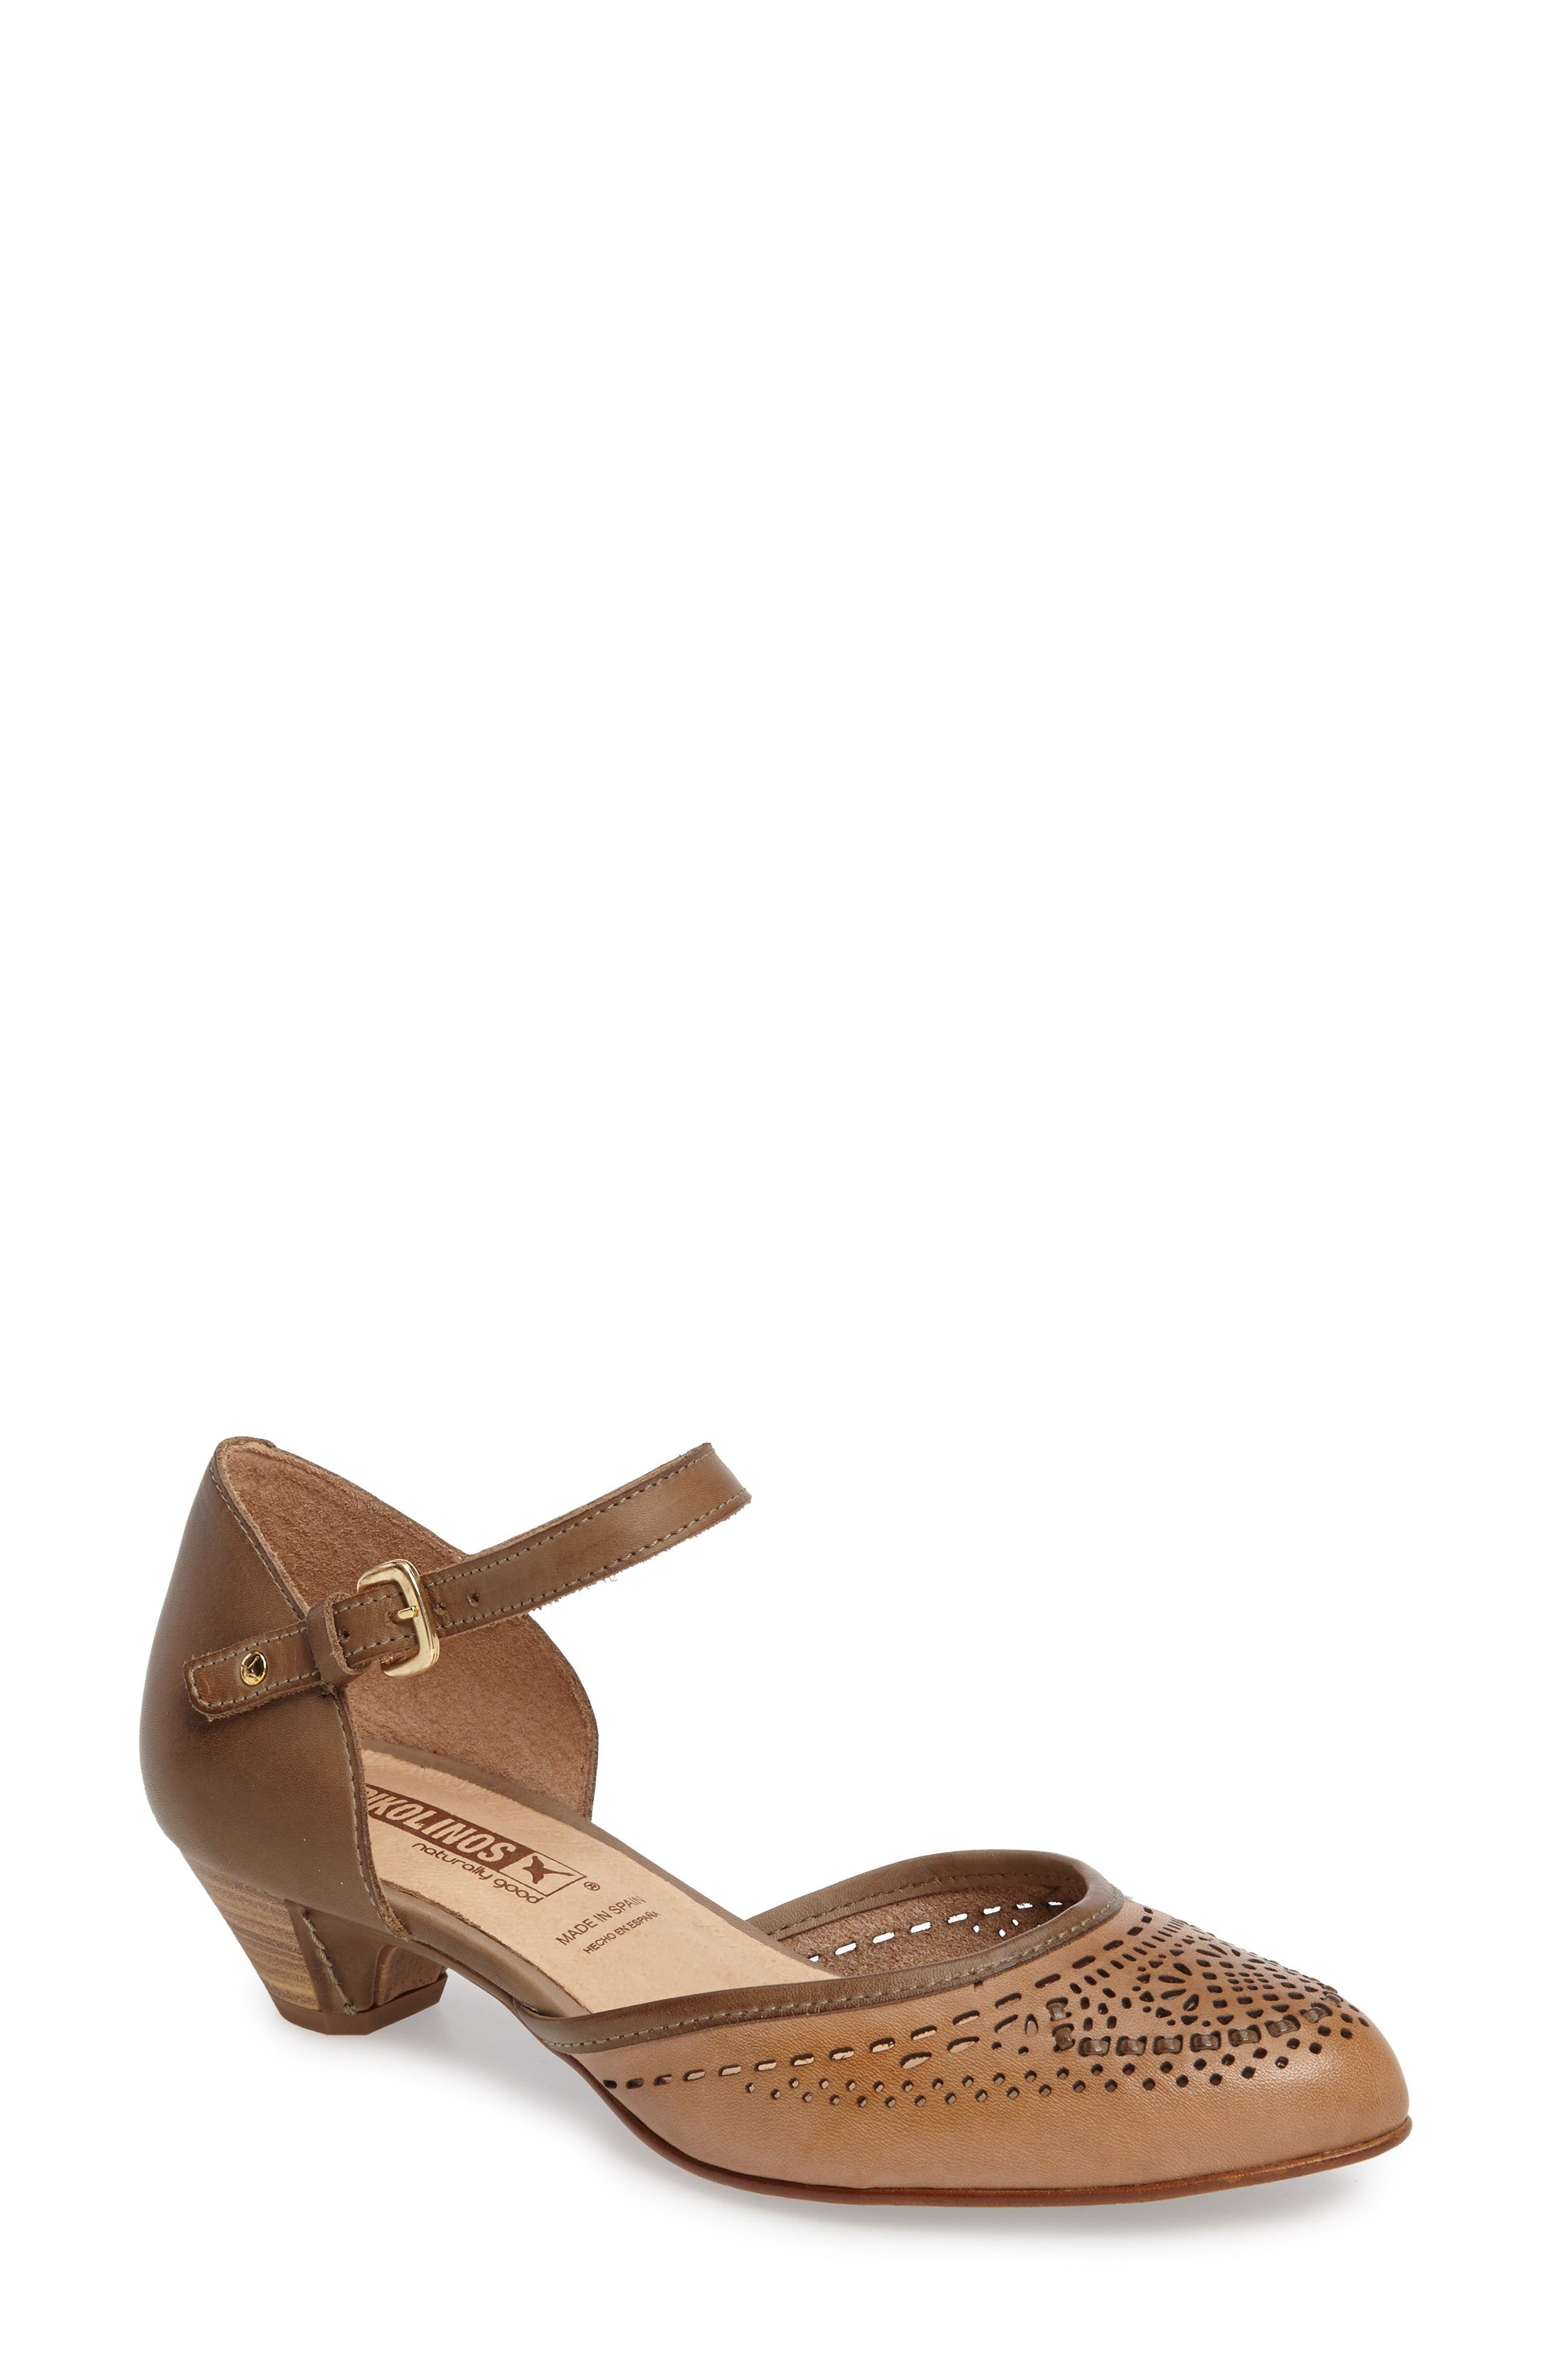 PIKOLINOS Elba Perforated Leather Ankle Strap Sandal